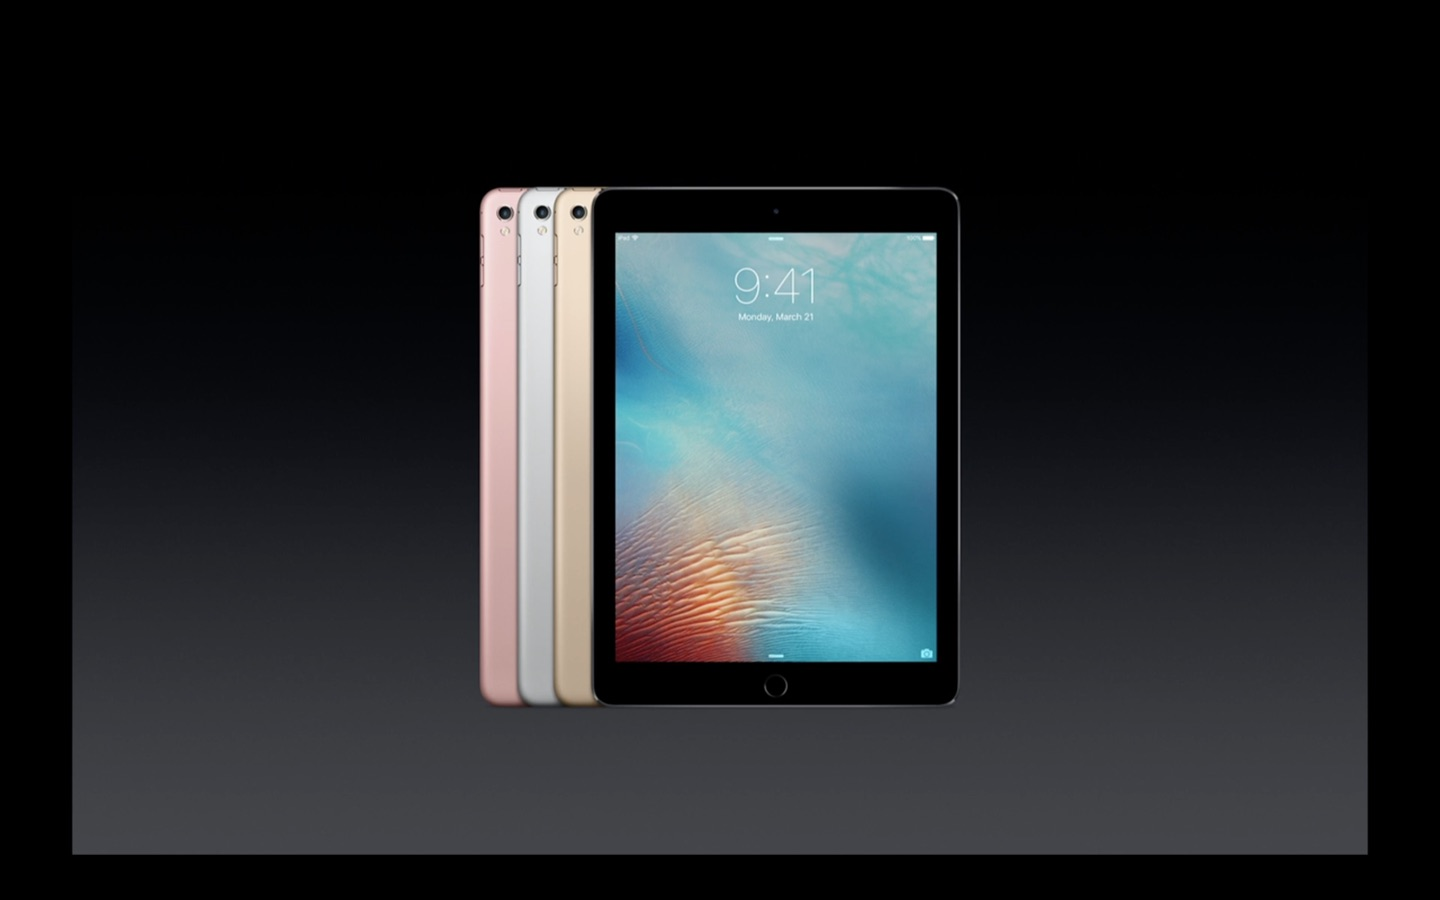 iPad-Pro-iPad-air-2-Comparison-01